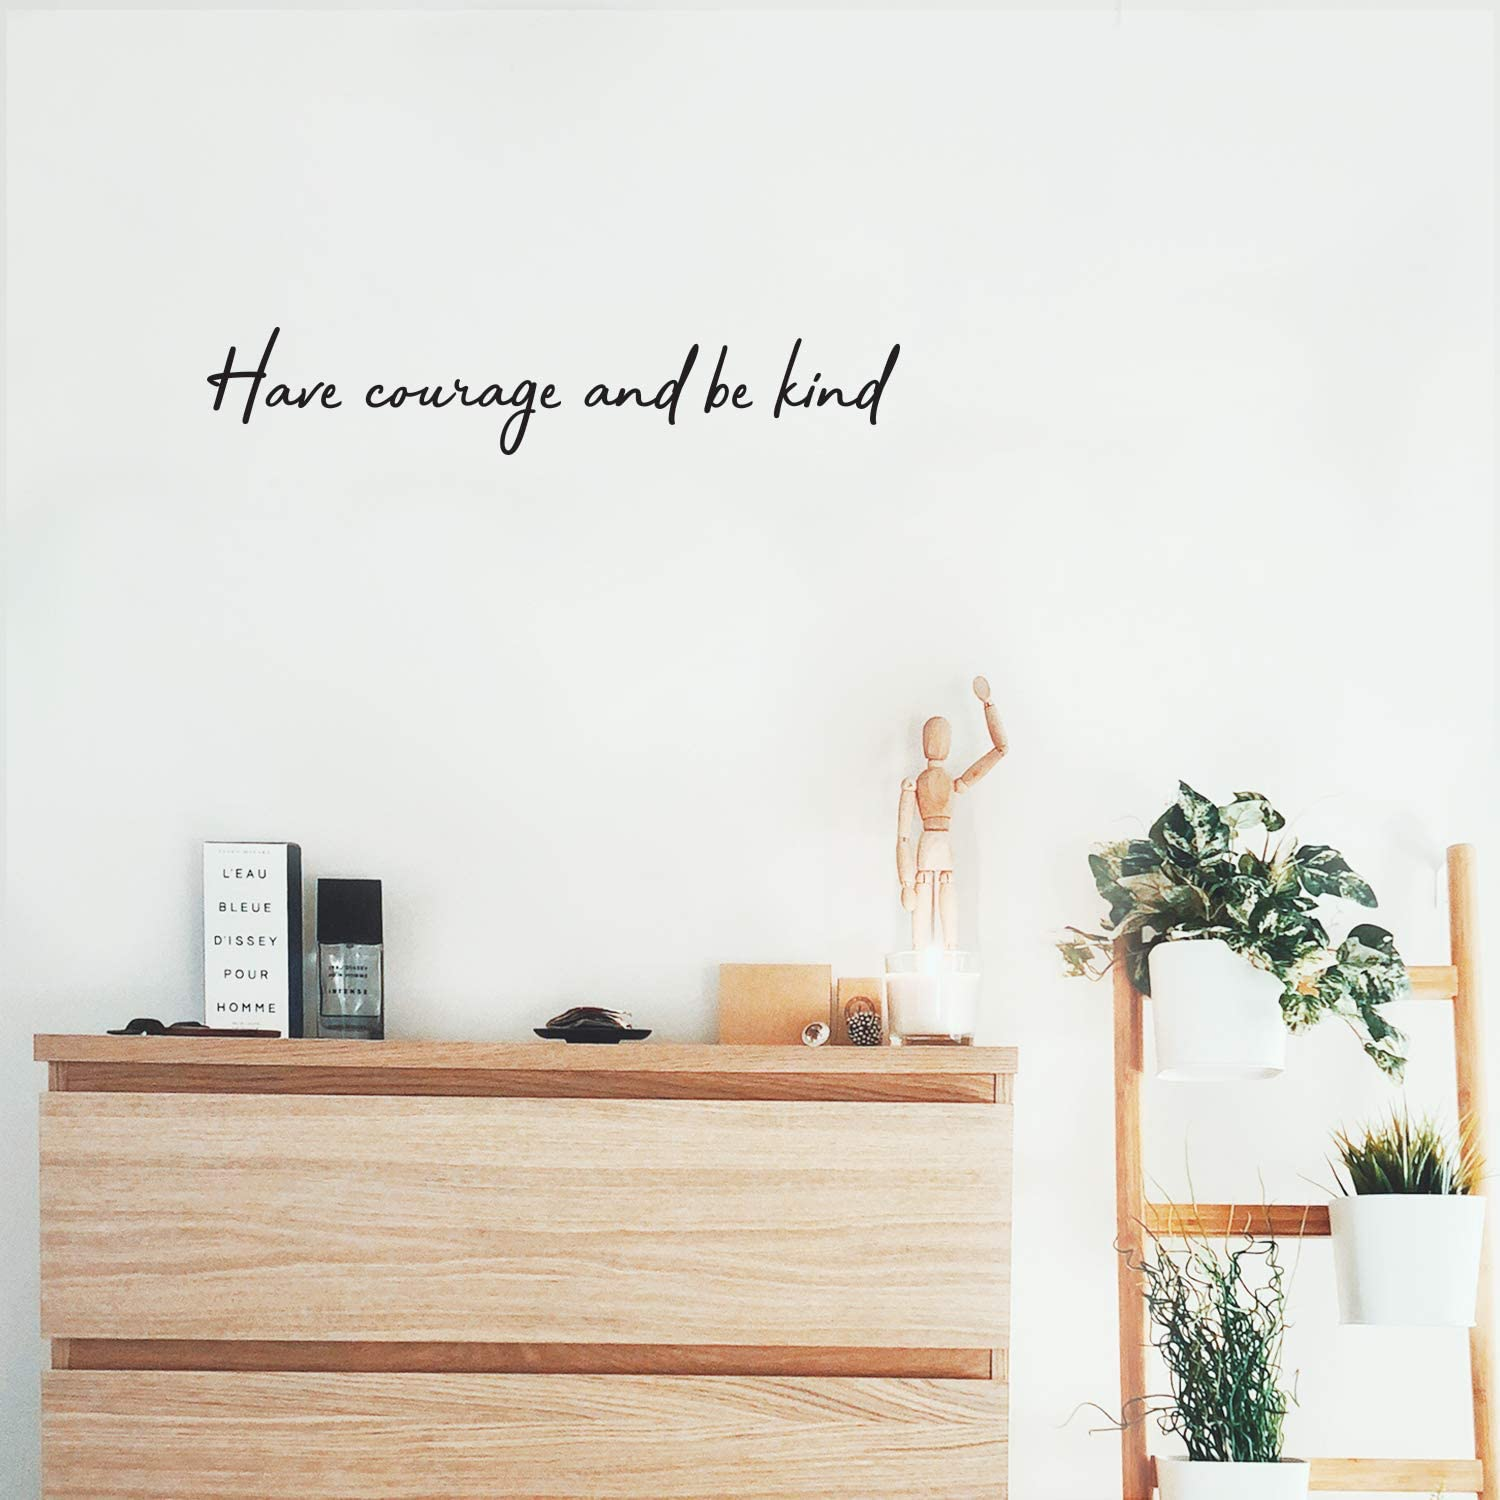 """Vinyl Wall Art Decal - Have Courage and Be Kind - 4.6"""" x 25"""" - Trendy Inspirational Quote for Home Bedroom Living Room Office School Classroom Gym Decoration Sticker"""